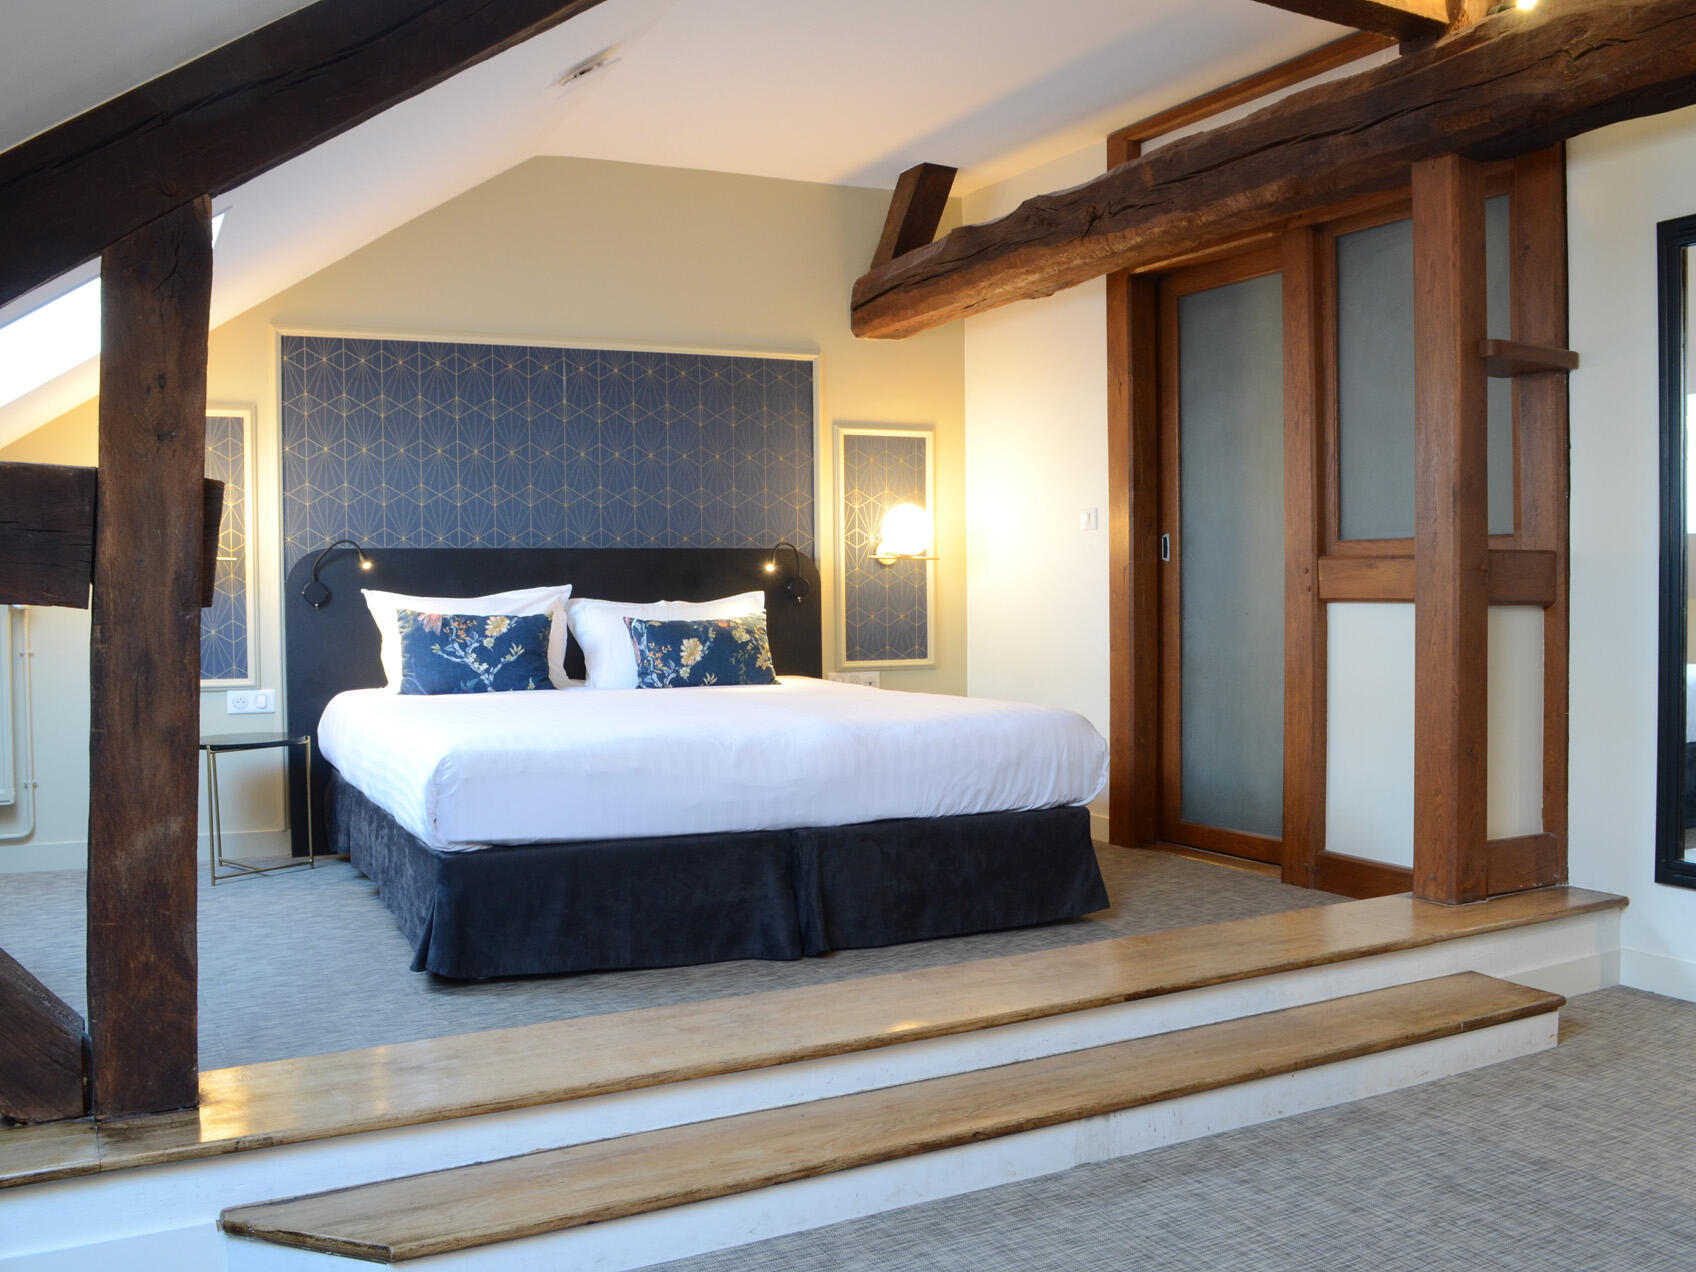 Interior of chambre familiale mansardee at The Originals Hotels